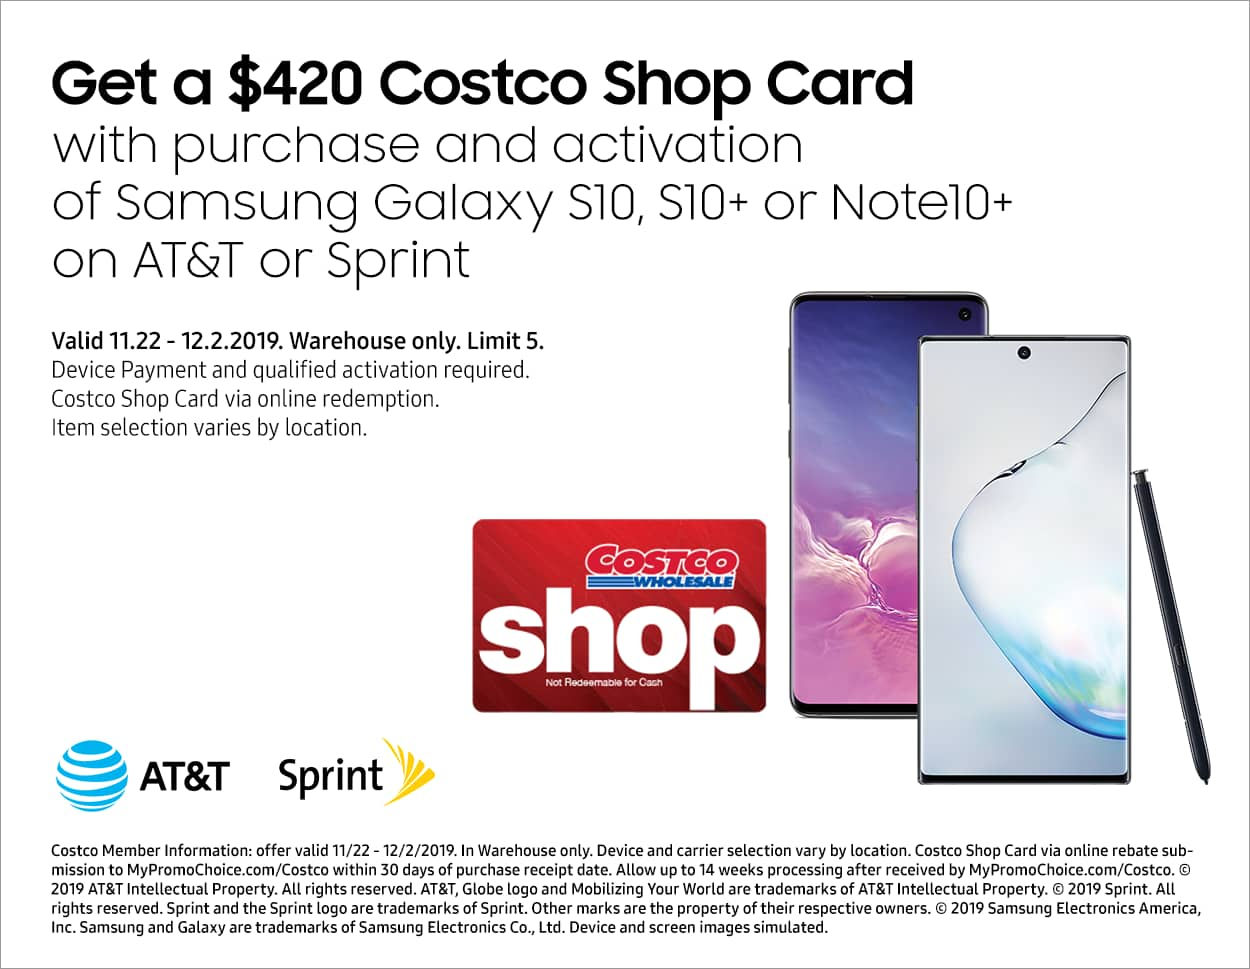 Costco In-Store Offer: AT&T or Sprint Samsung Galaxy Note 10+ , S10+ S10 (Activation Req.) - Get $420 Costco shop card